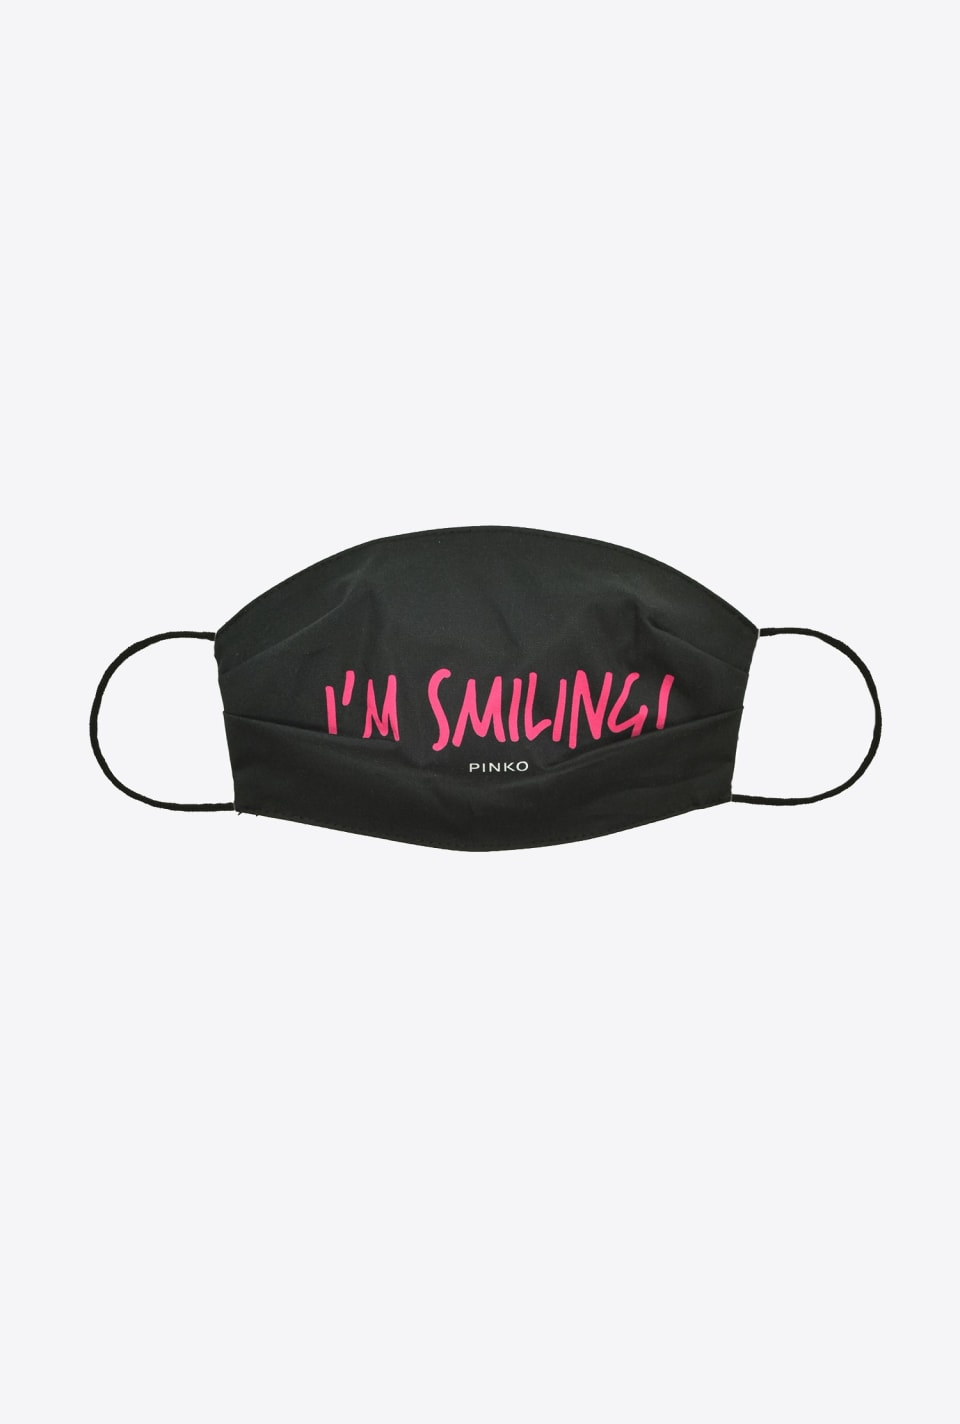 Mascarilla «I am smiling!» - Pinko